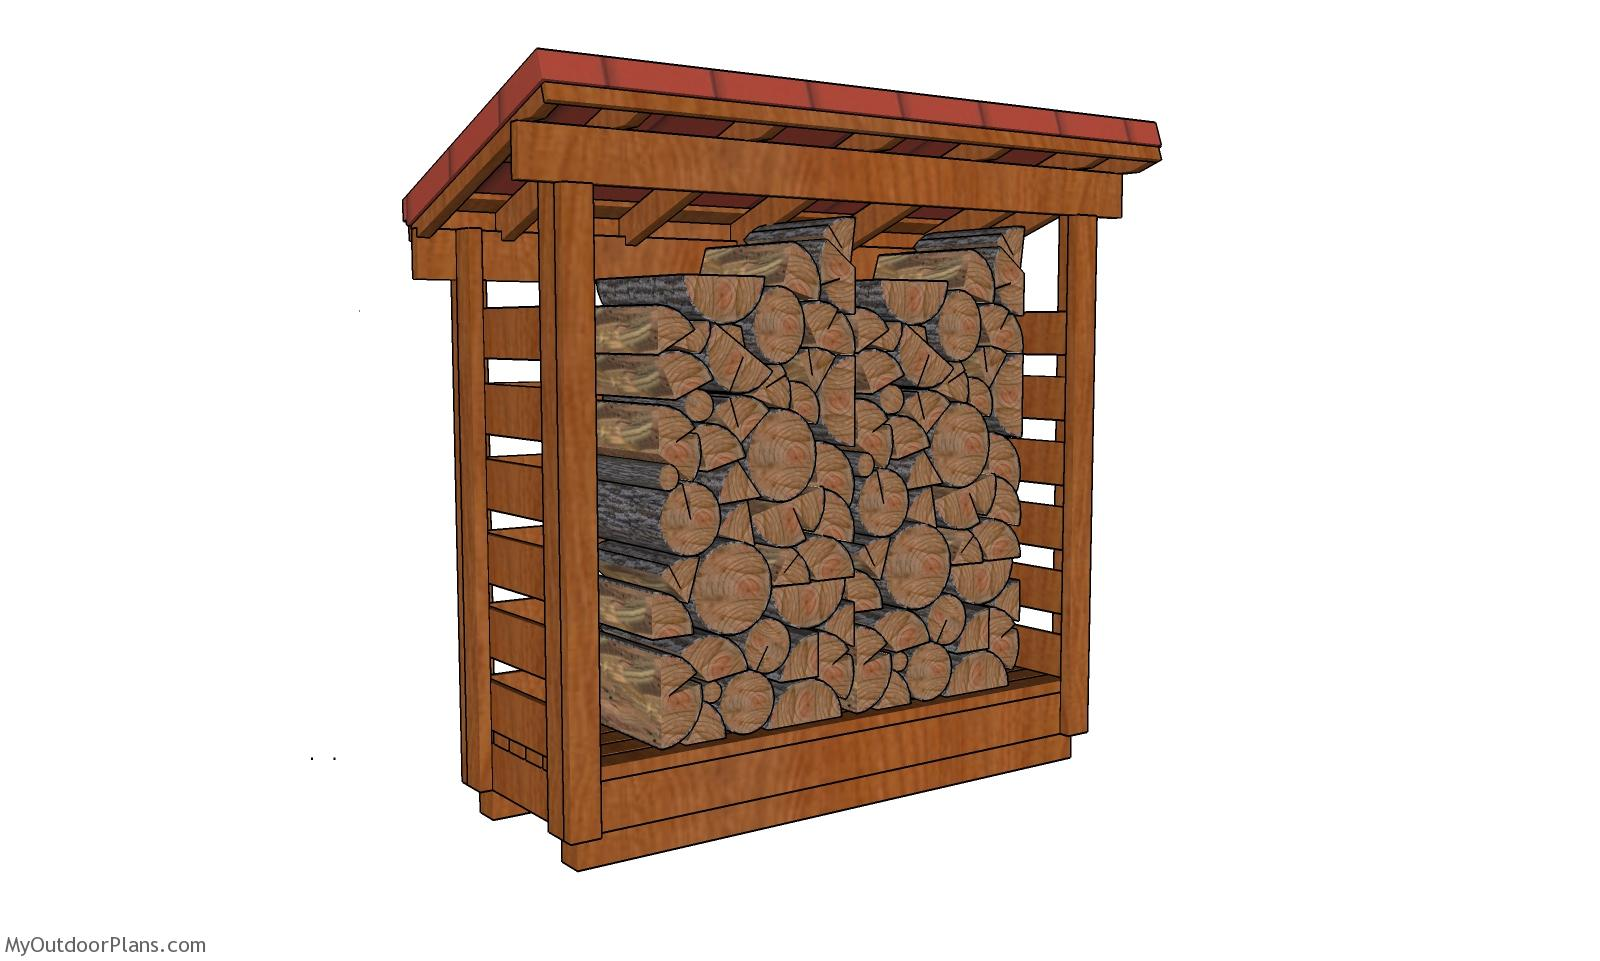 2x6 Half Cord Firewood Shed Plans